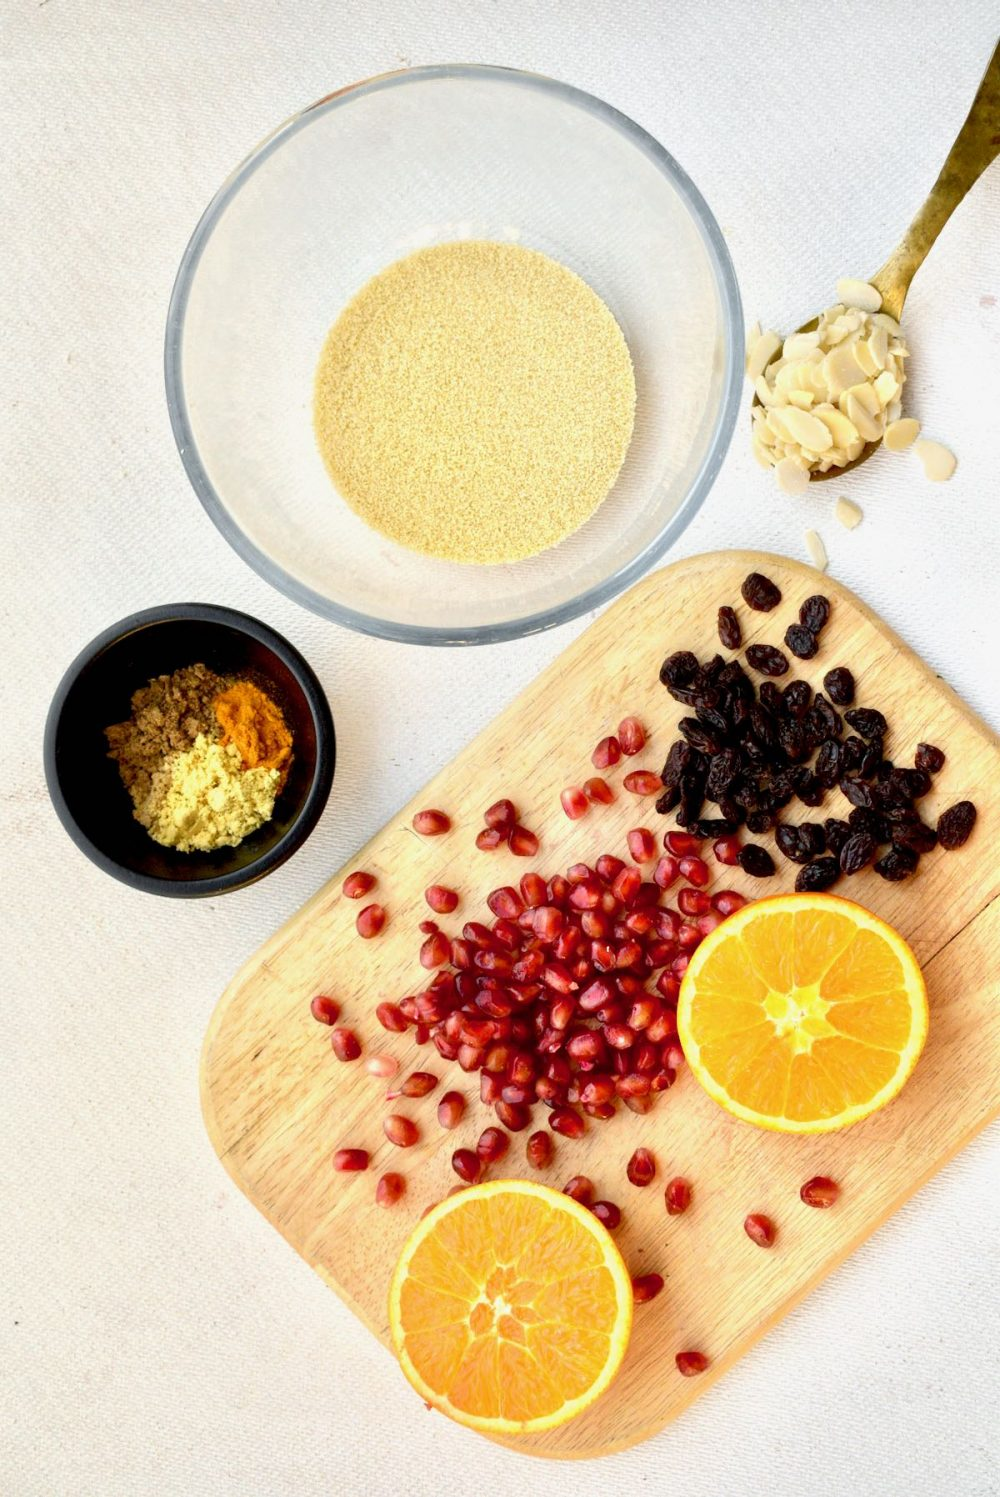 A pot of spices, a bowl of couscous, flaked almonds and fruits laid out on a board